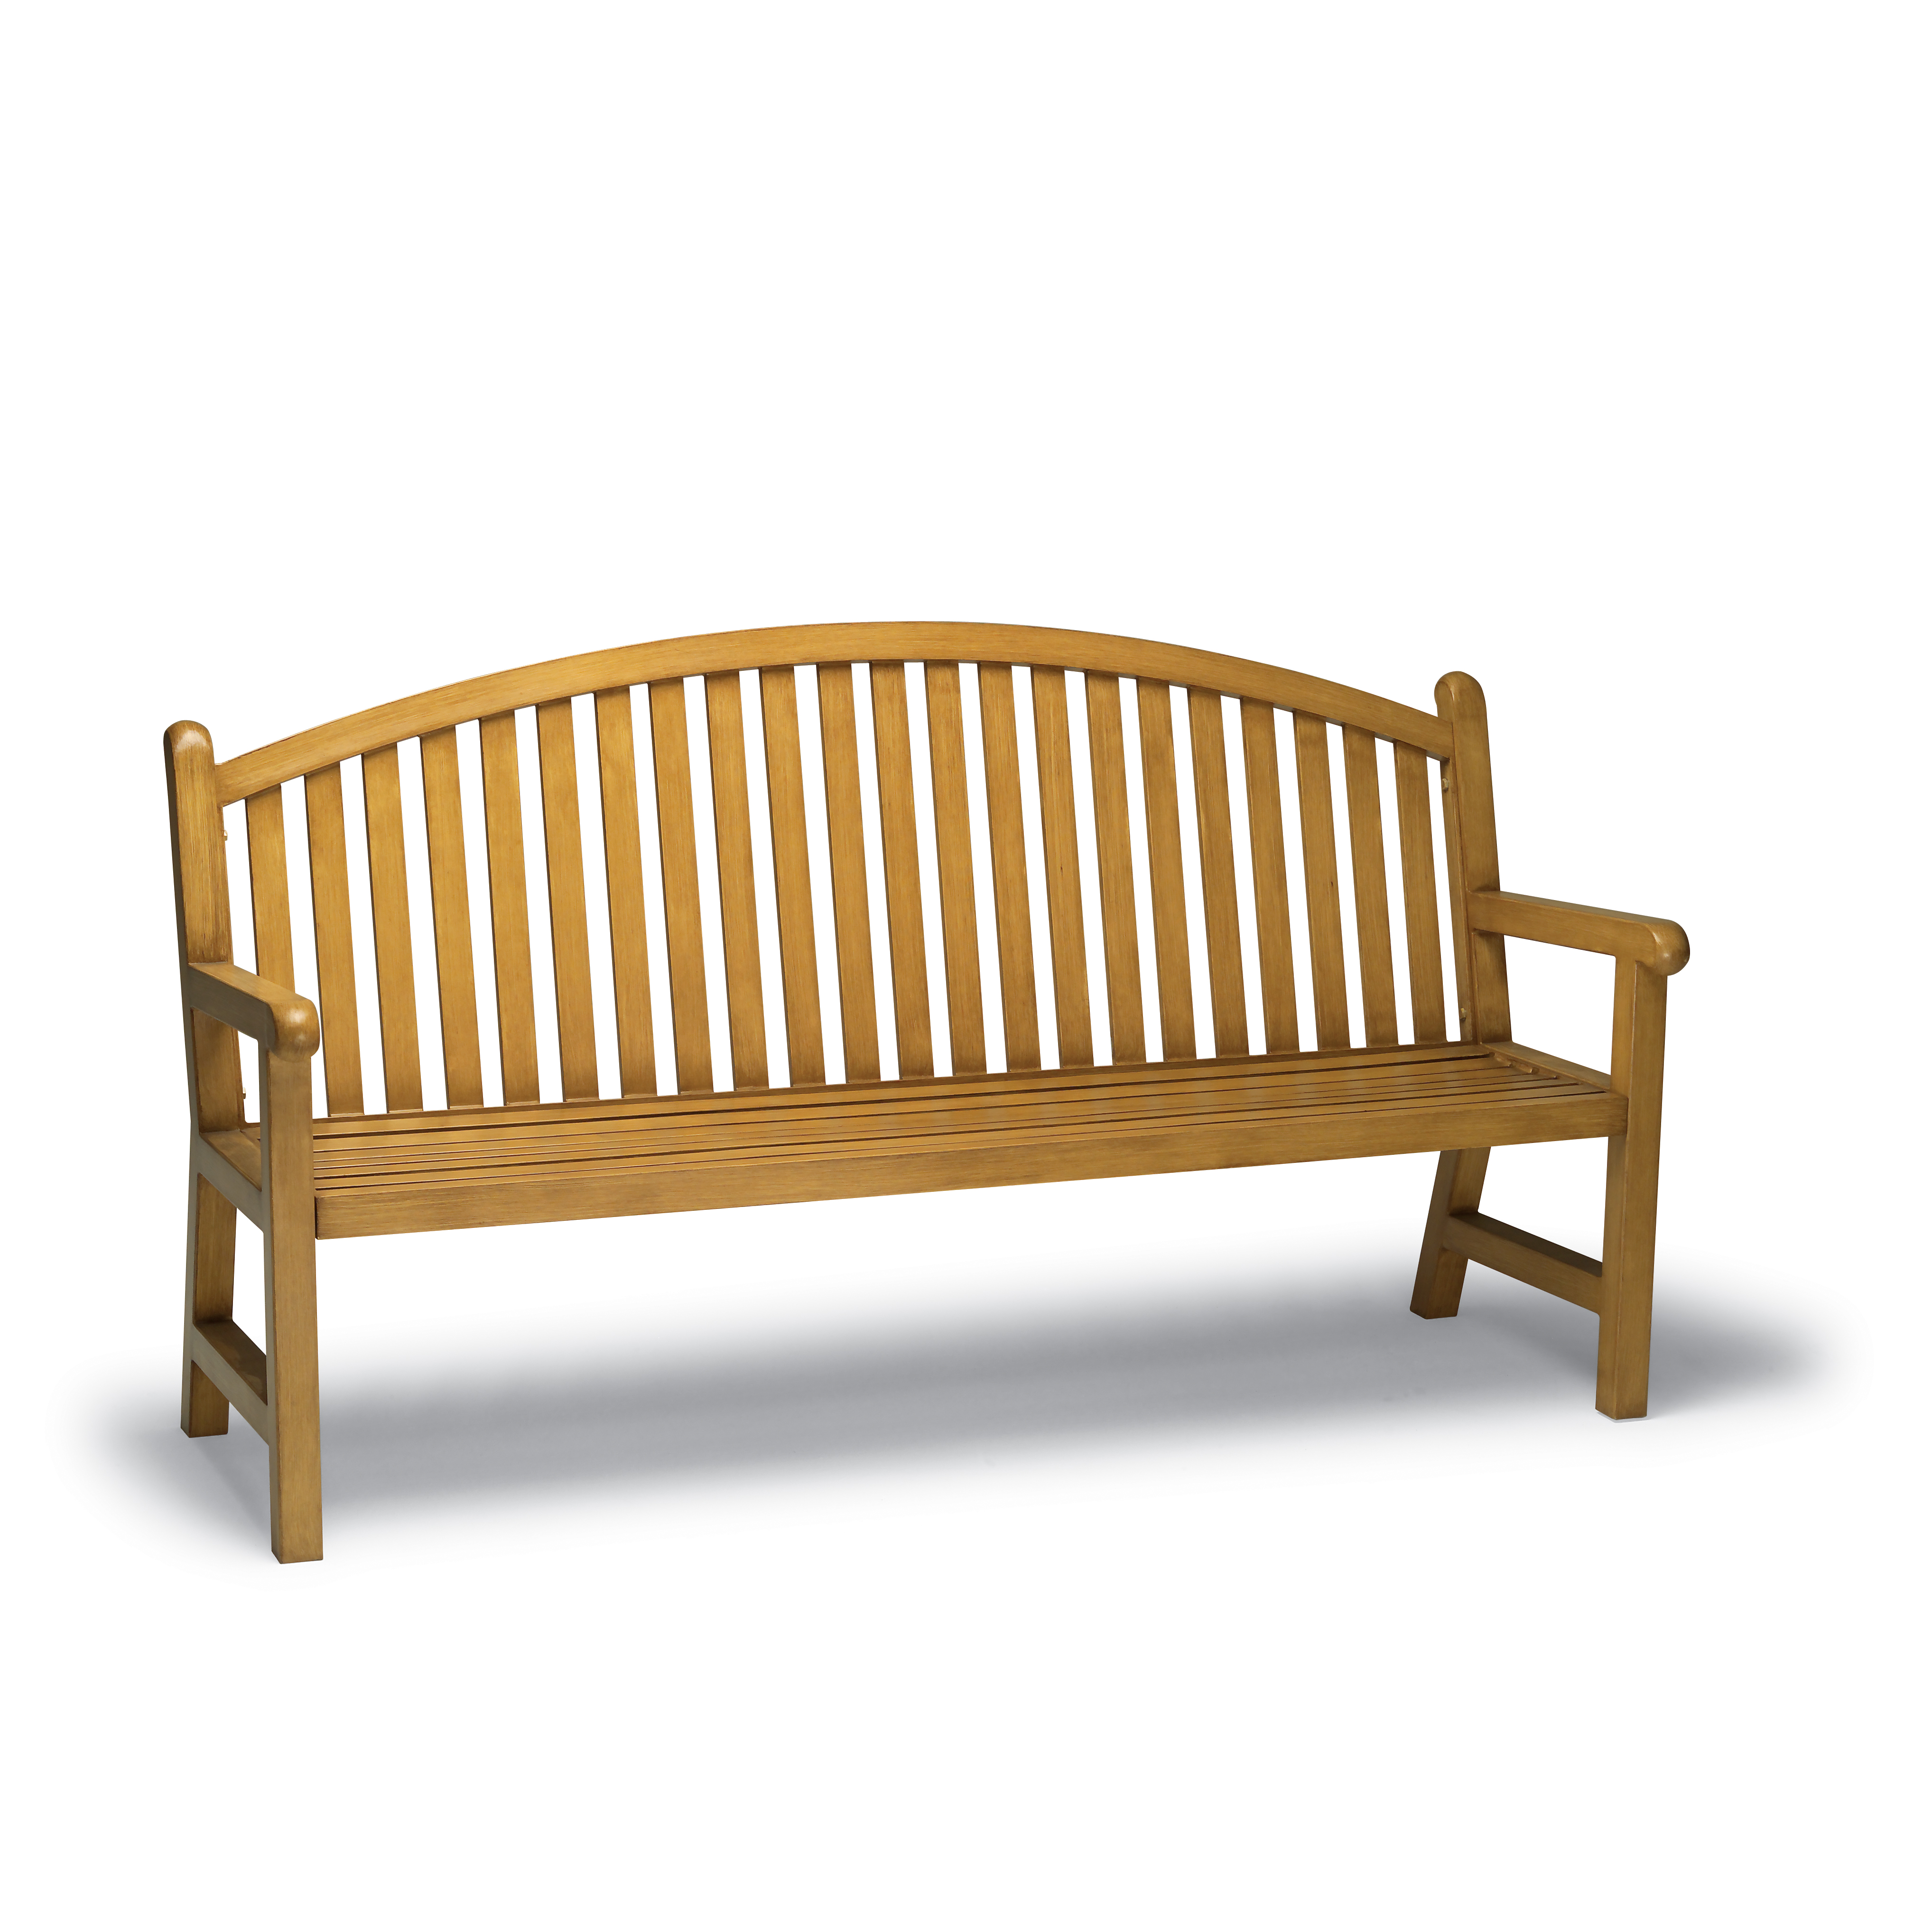 Yorktown Collection 6' Bench with Arched Back